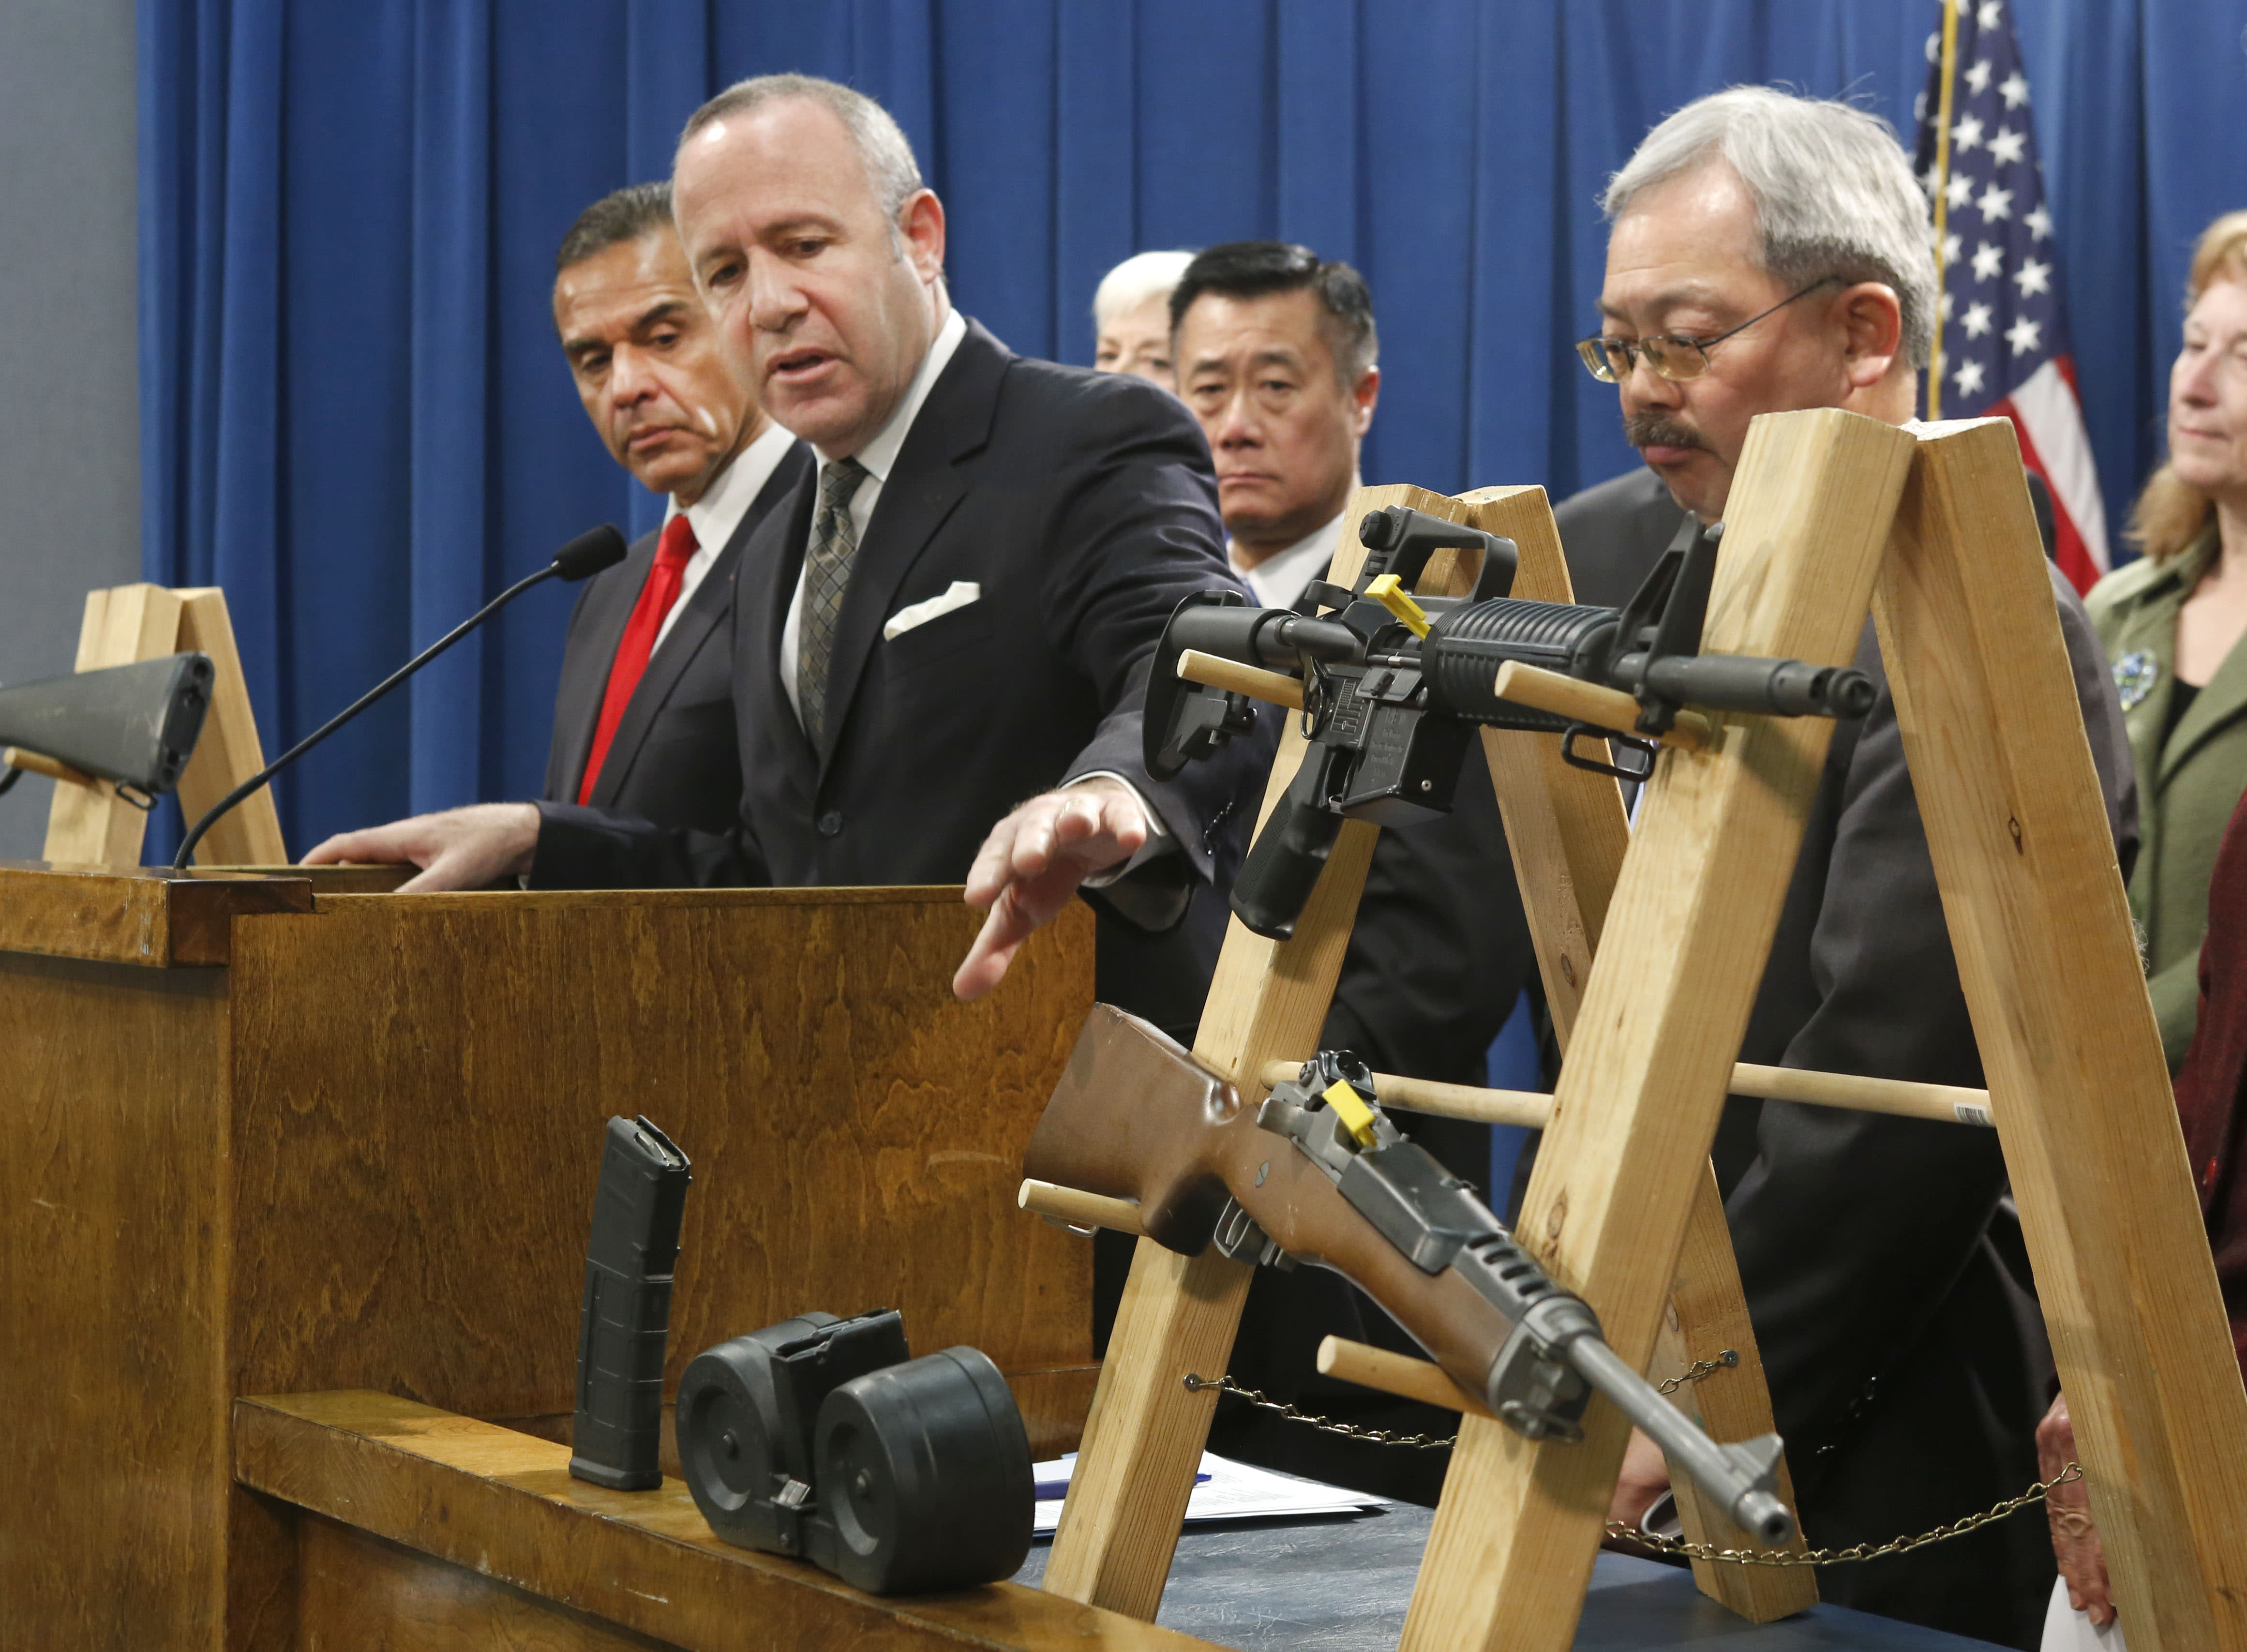 Senate President Pro Tem Darrell Steinberg, second from left, glances to a pair of semi-automatic rifles as he discusses a package of proposed gun control legislation at a Capitol news conference in Sacramento, Calif., Thursday, Feb. 7, 2013. Senate Democrats unveiled a package of 10 proposed laws designed to close loopholes in existing gun regulations, keep firearms and ammunition out of the hands of dangerous person and strengthen education relating to firearms and gun ownership. Also seen are Los Angeles Mayor Antonio Villaraigosa, left, Sen. Leland Yee, D-San Francisco, third from left, San Francisco Mayor Ed Lee, second from right. (AP Photo/Rich Pedroncelli)